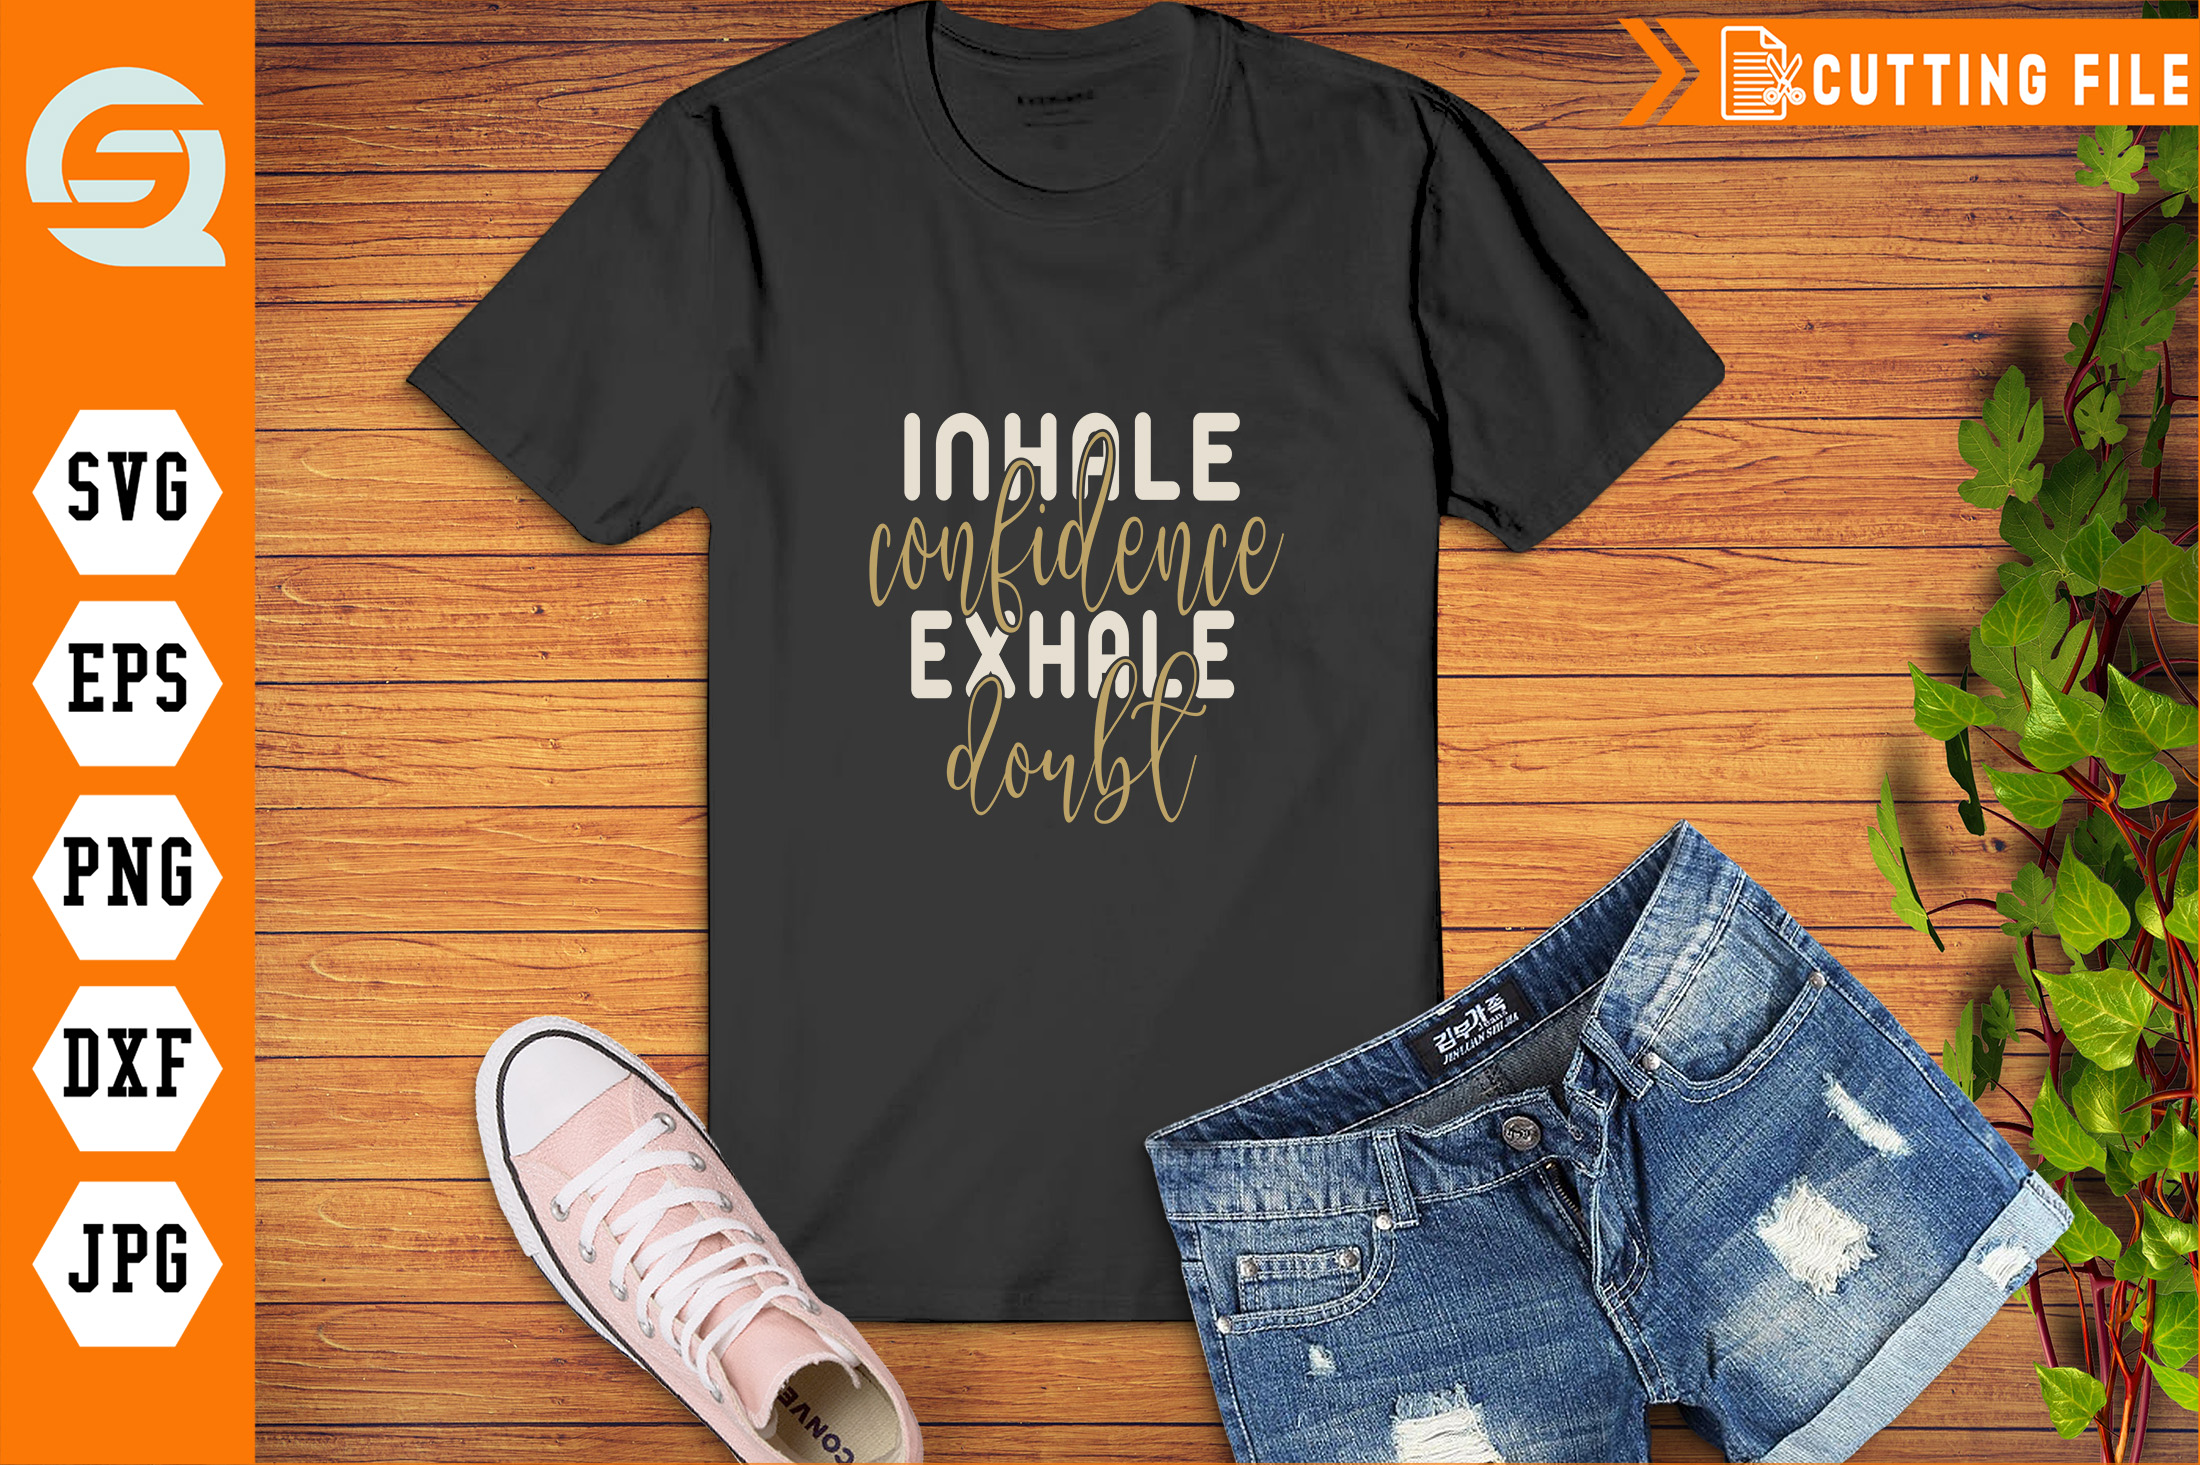 Download Free Inhale Confidence Exhale Doubt Graphic By Crafty Files for Cricut Explore, Silhouette and other cutting machines.